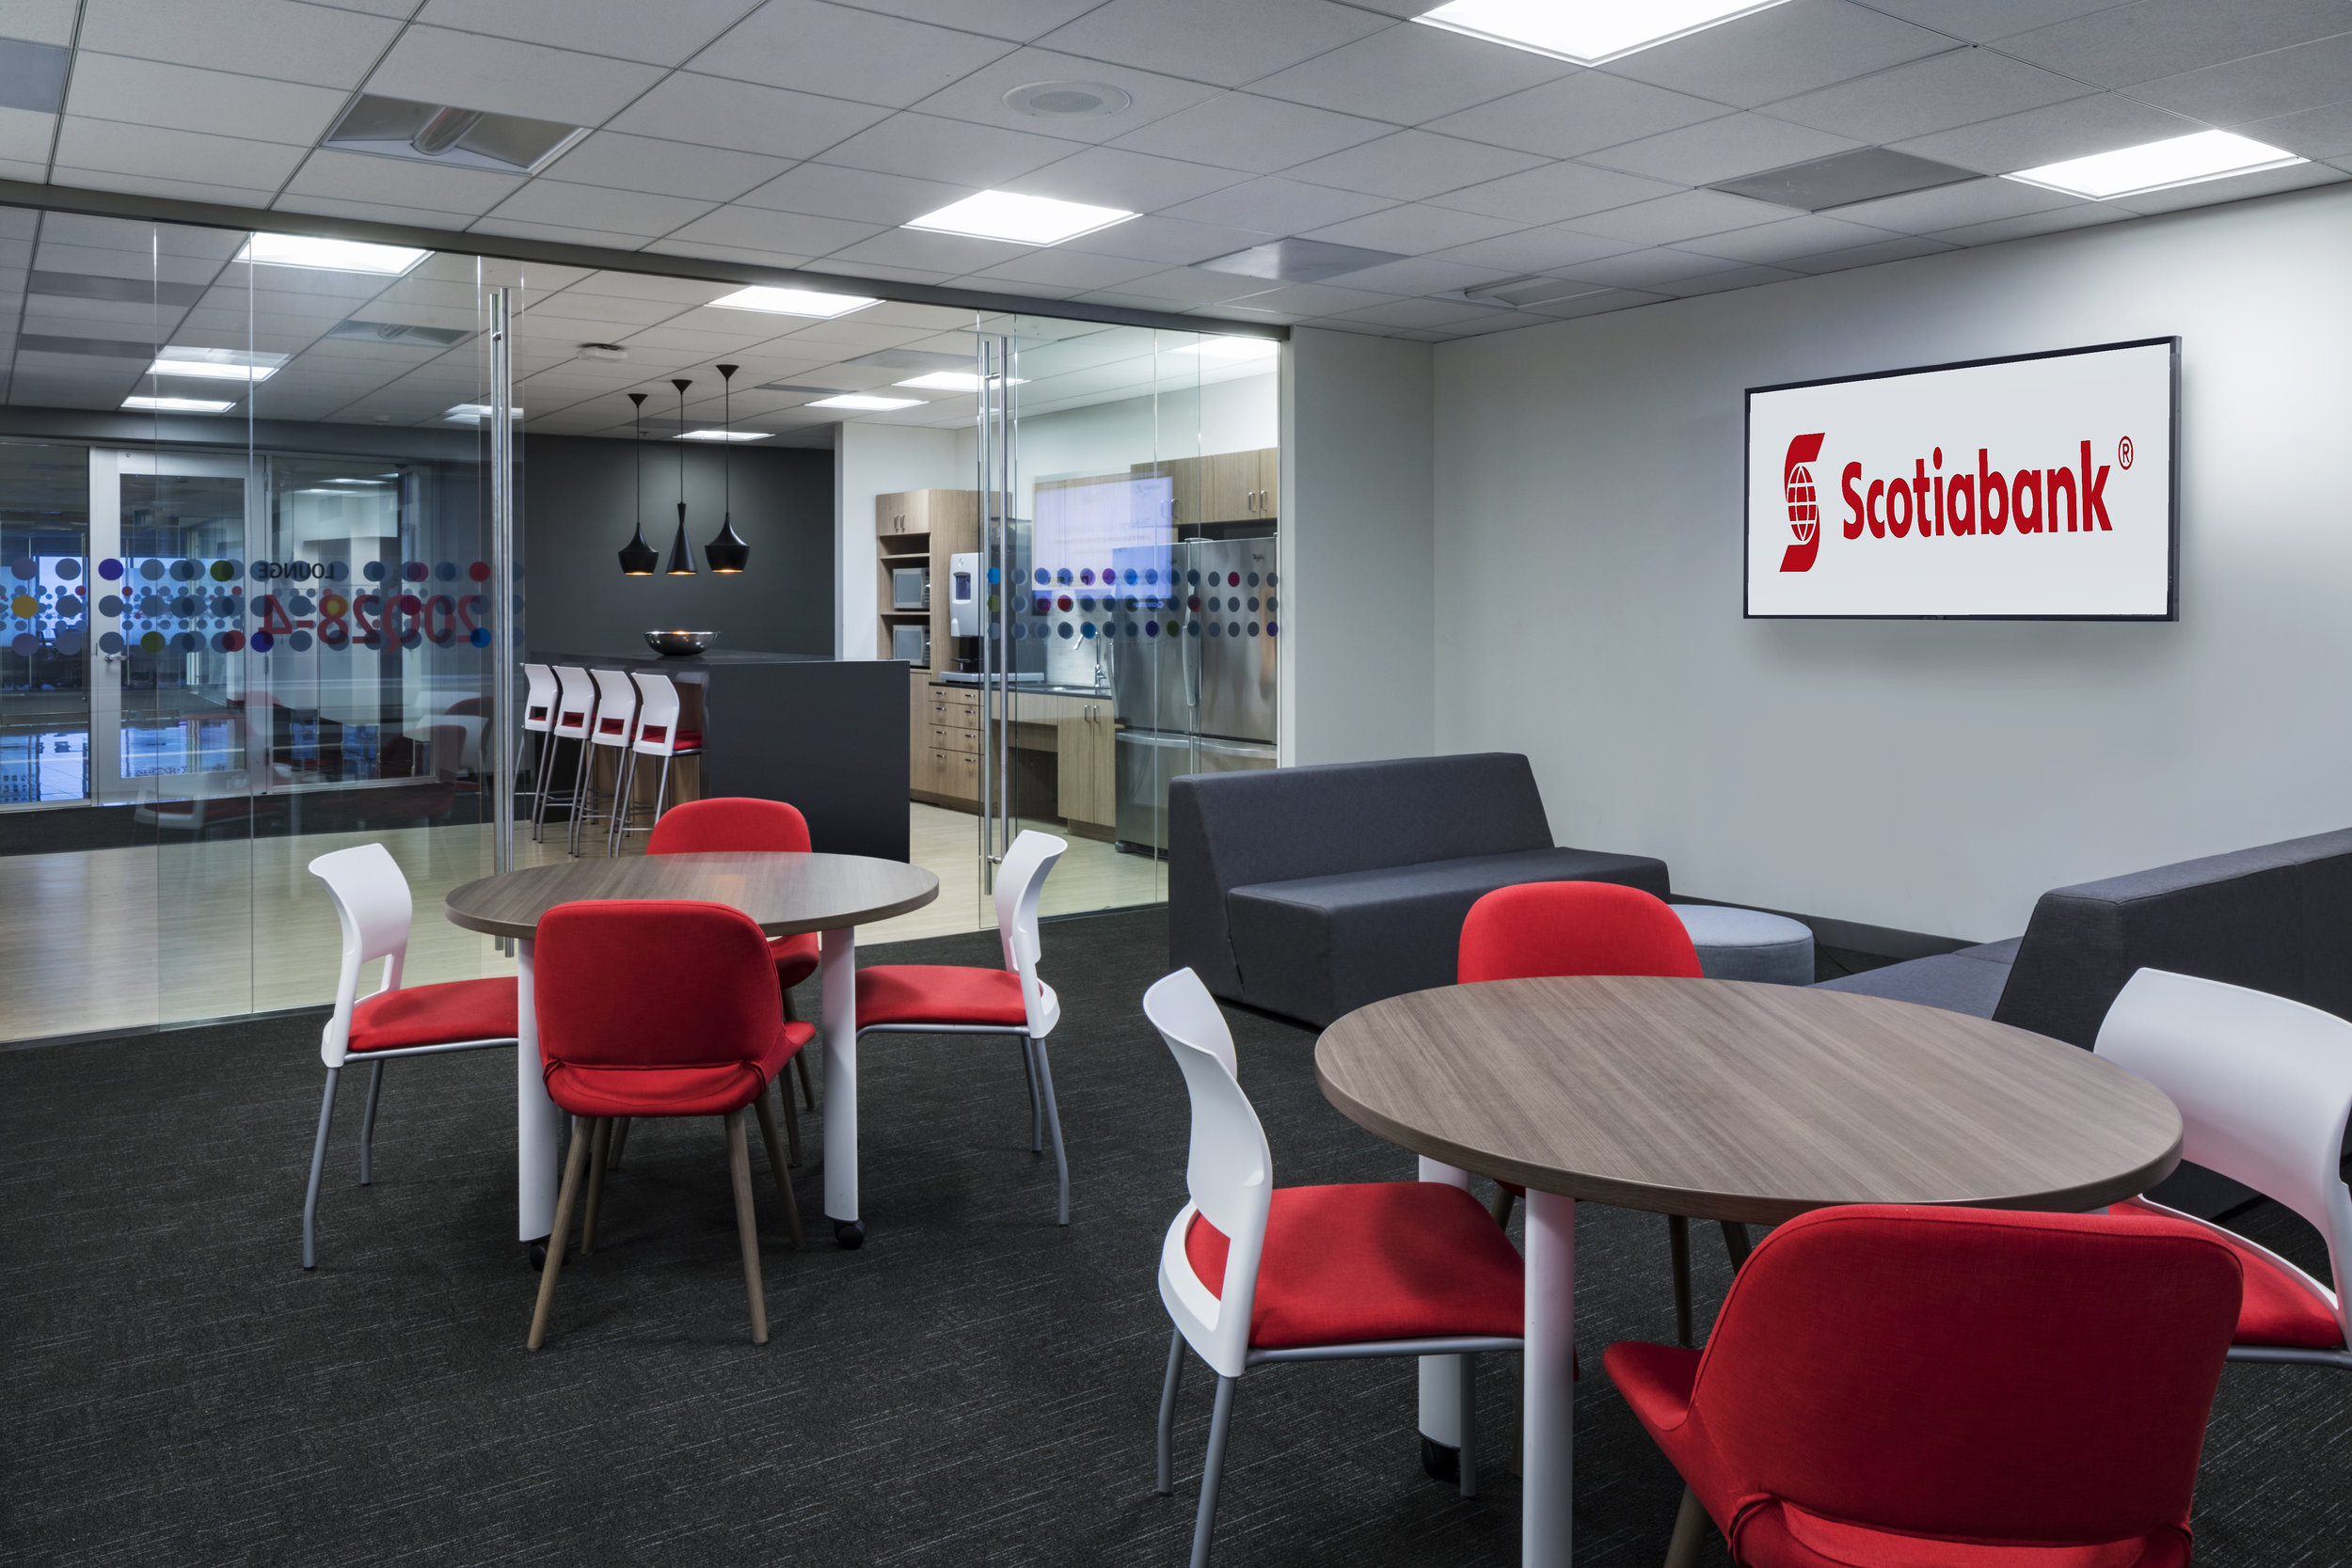 Scotiabank: 20 Queen St. W - 18,000 SF